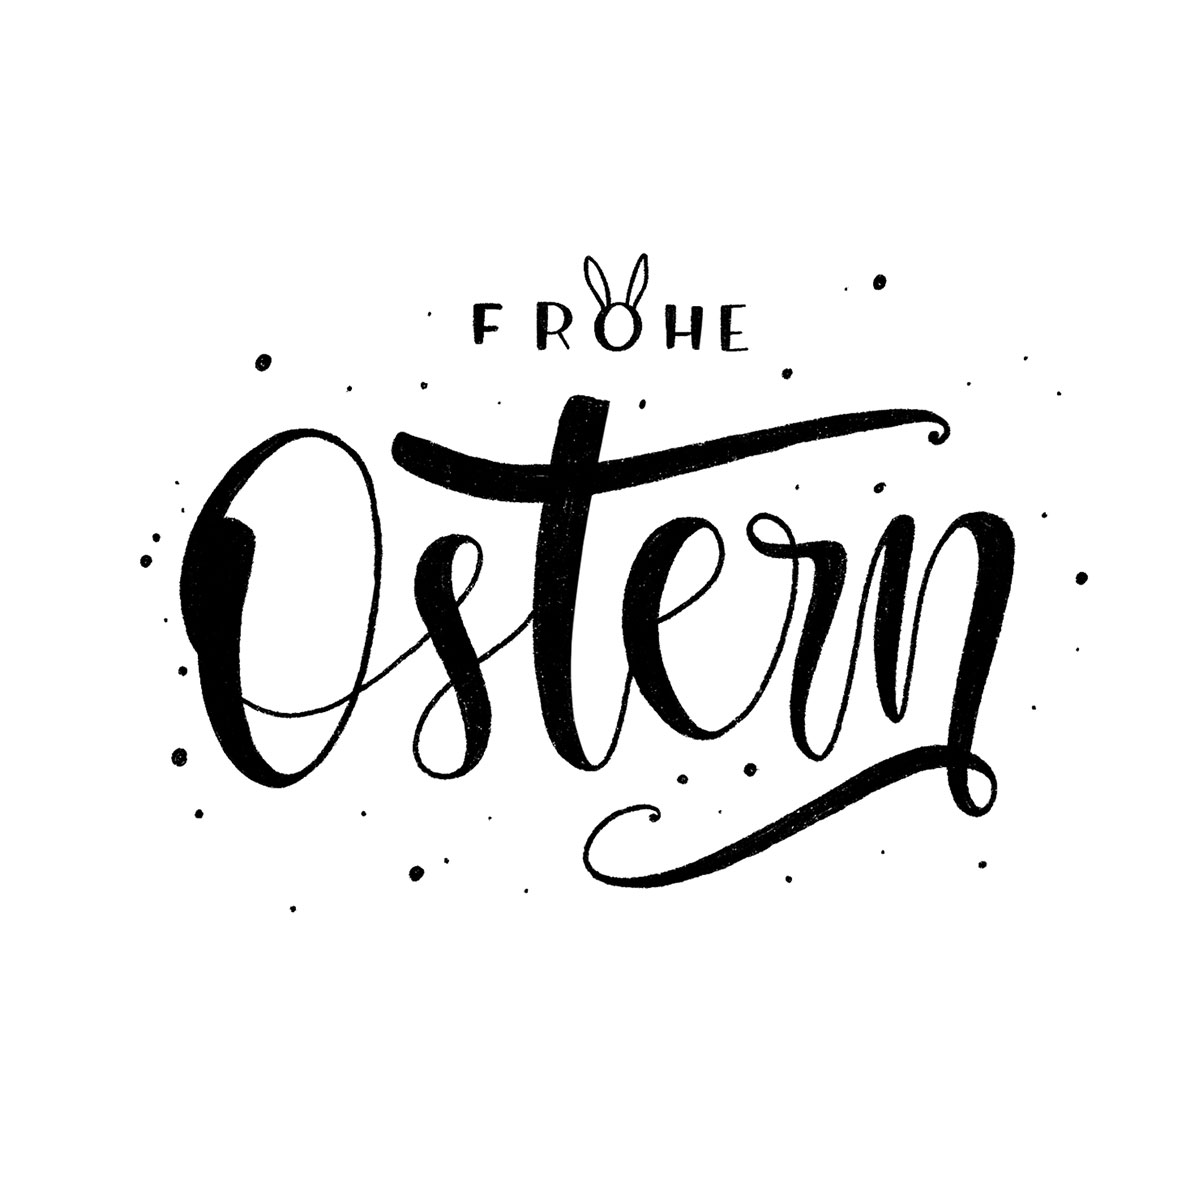 Lettering - Frohe Ostern!